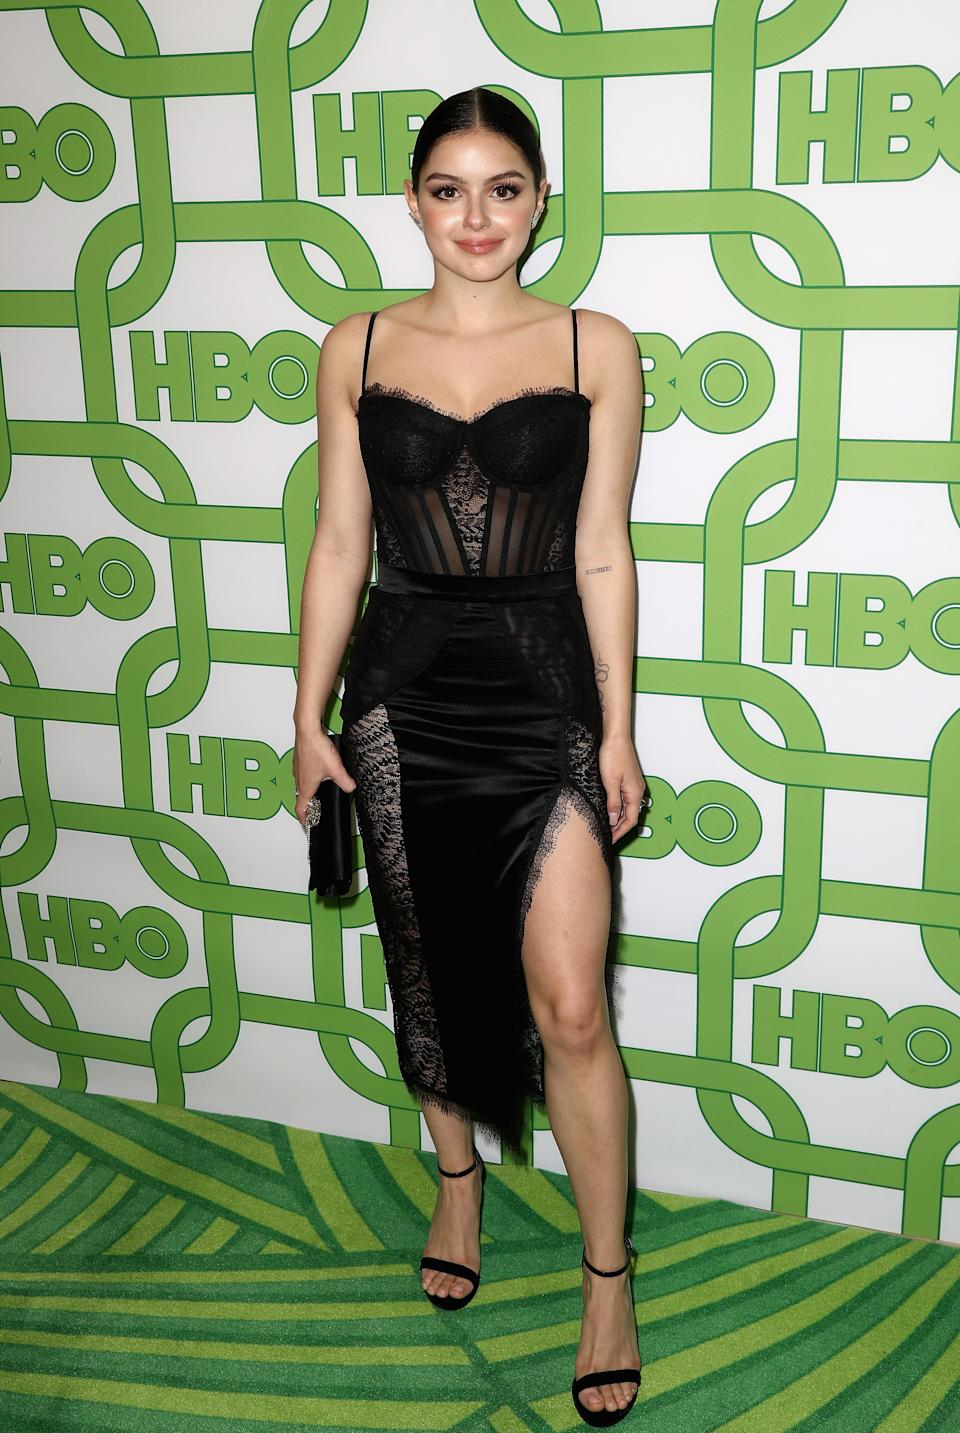 "<h1 class=""title"">HBO's Official Golden Globe Awards After Party - Arrivals</h1> <div class=""caption""> LOS ANGELES, CA - JANUARY 06: Ariel Winter attends HBO's Official Golden Globe Awards After Party at Circa 55 Restaurant on January 6, 2019 in Los Angeles, California. (Photo by Frederick M. Brown/Getty Images) </div> <cite class=""credit"">Frederick M. Brown</cite>"